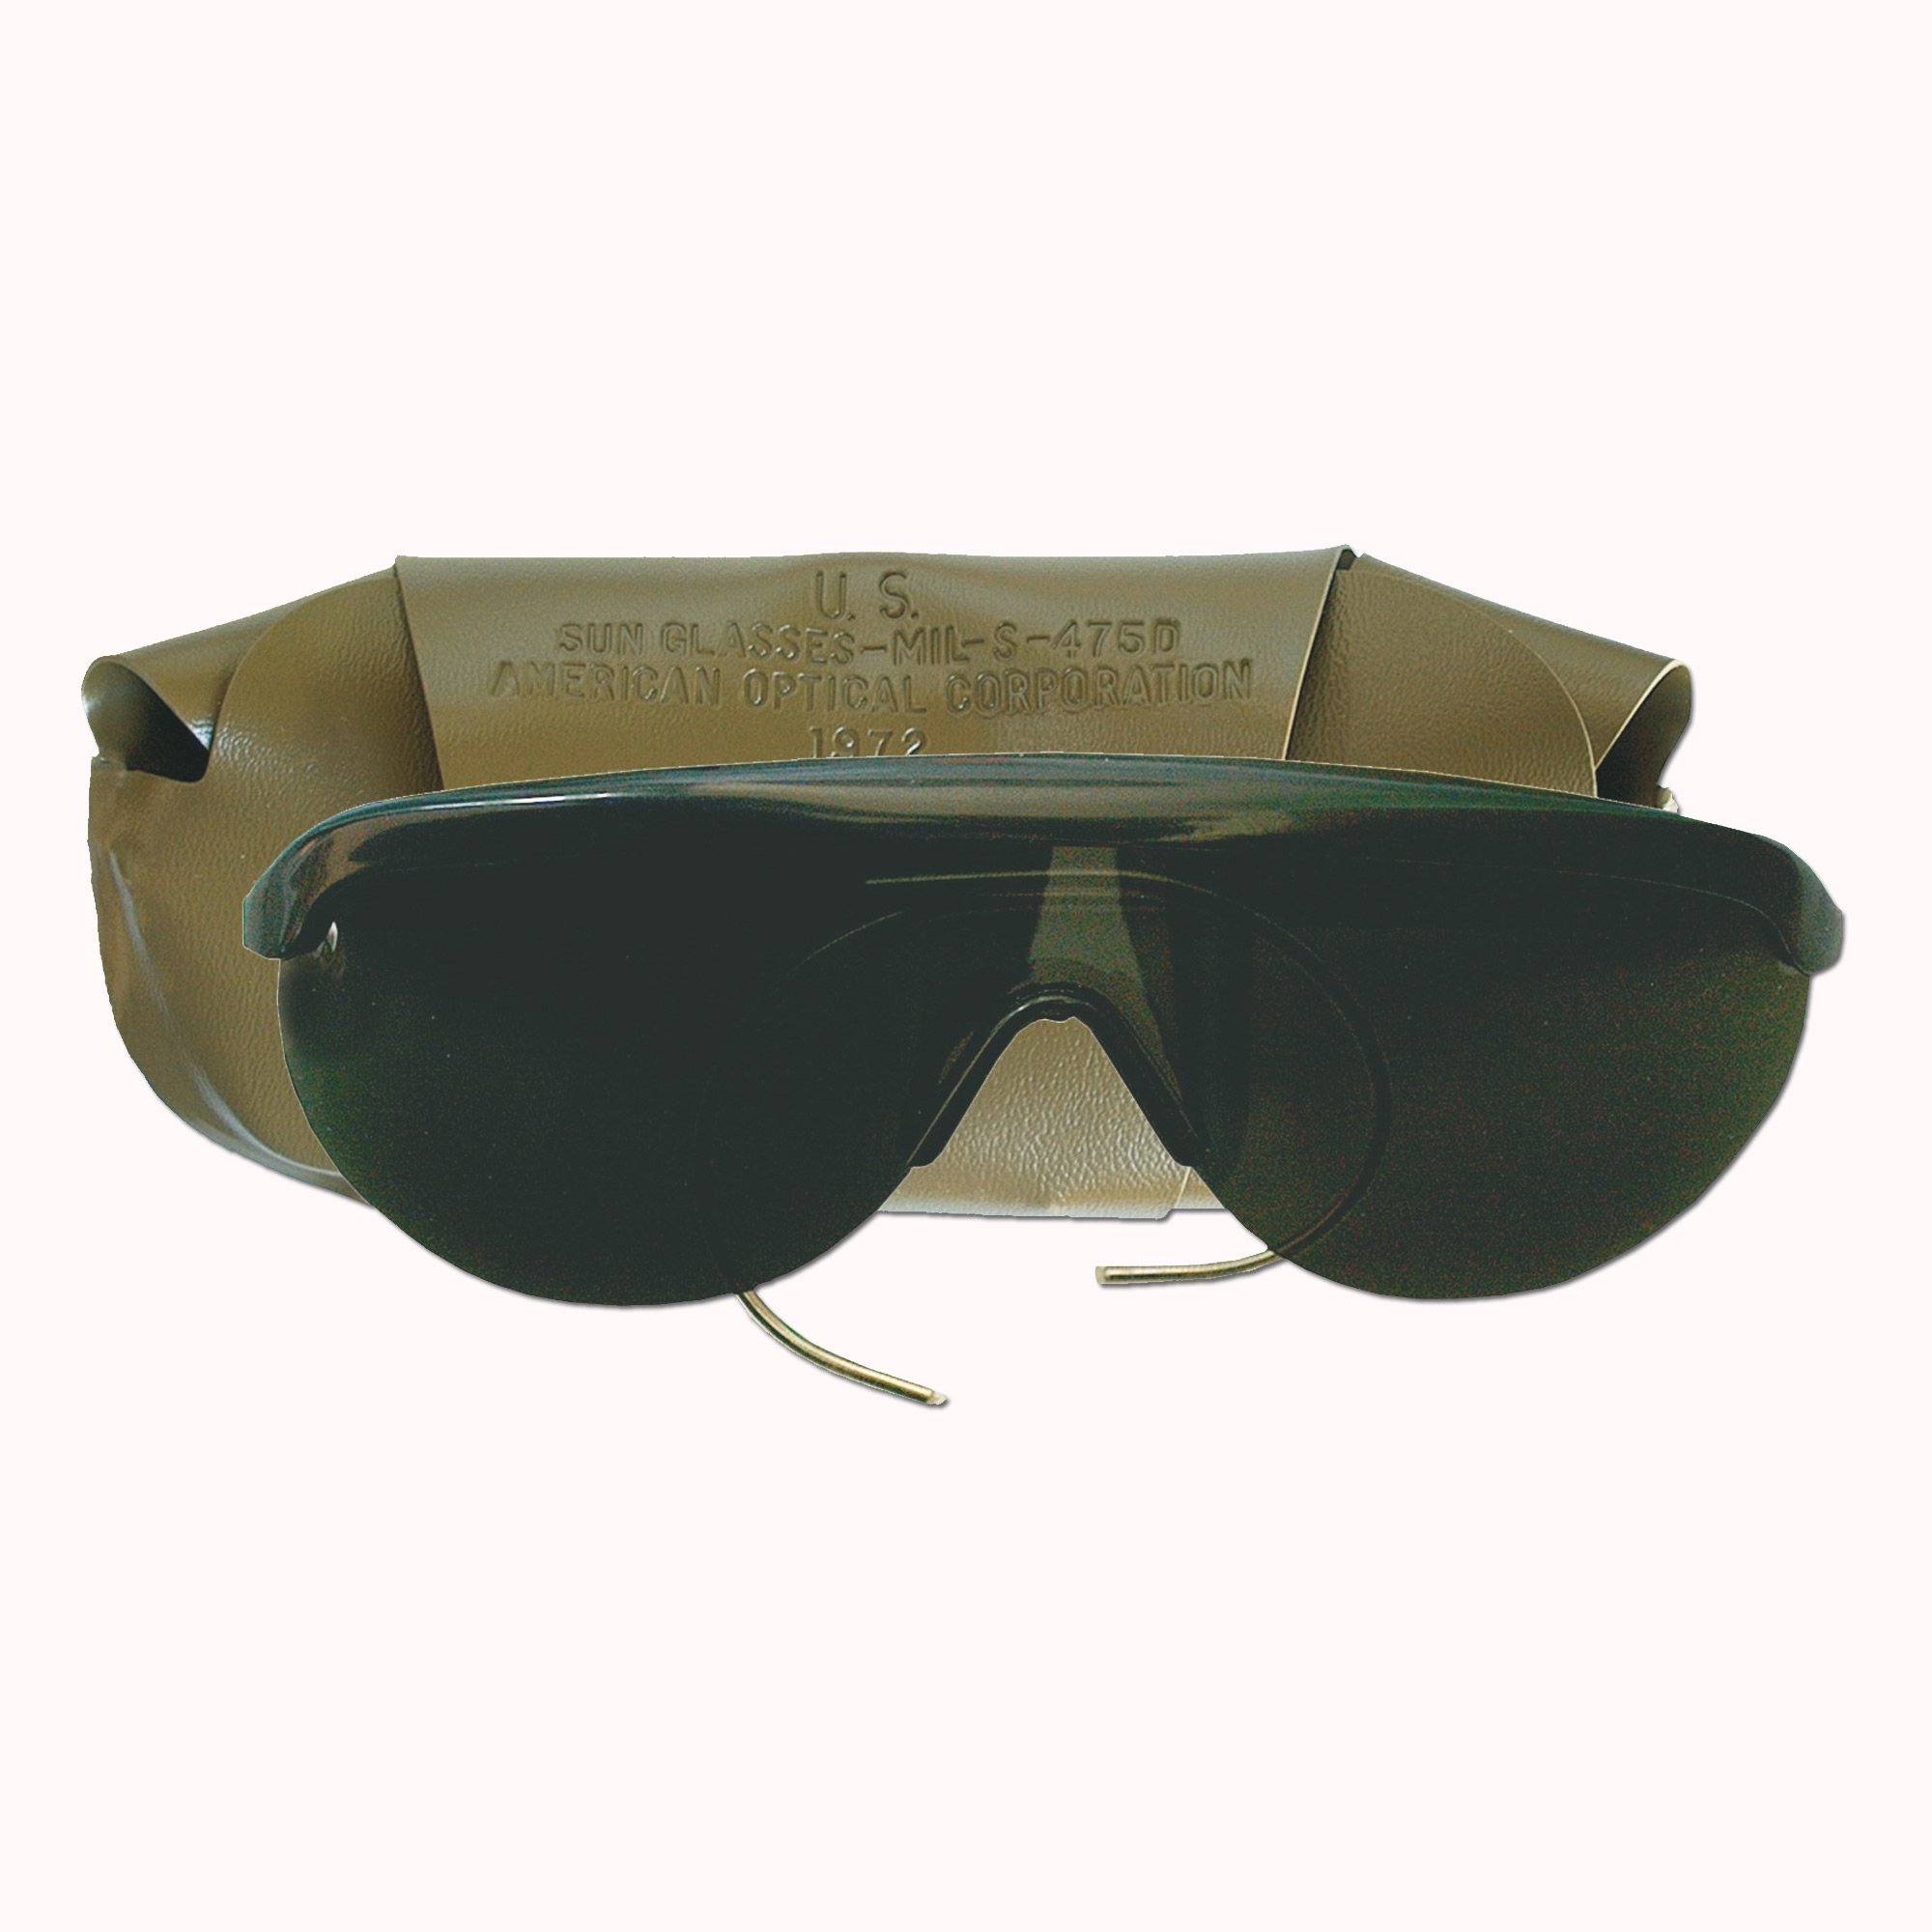 US Army Sonnenbrille